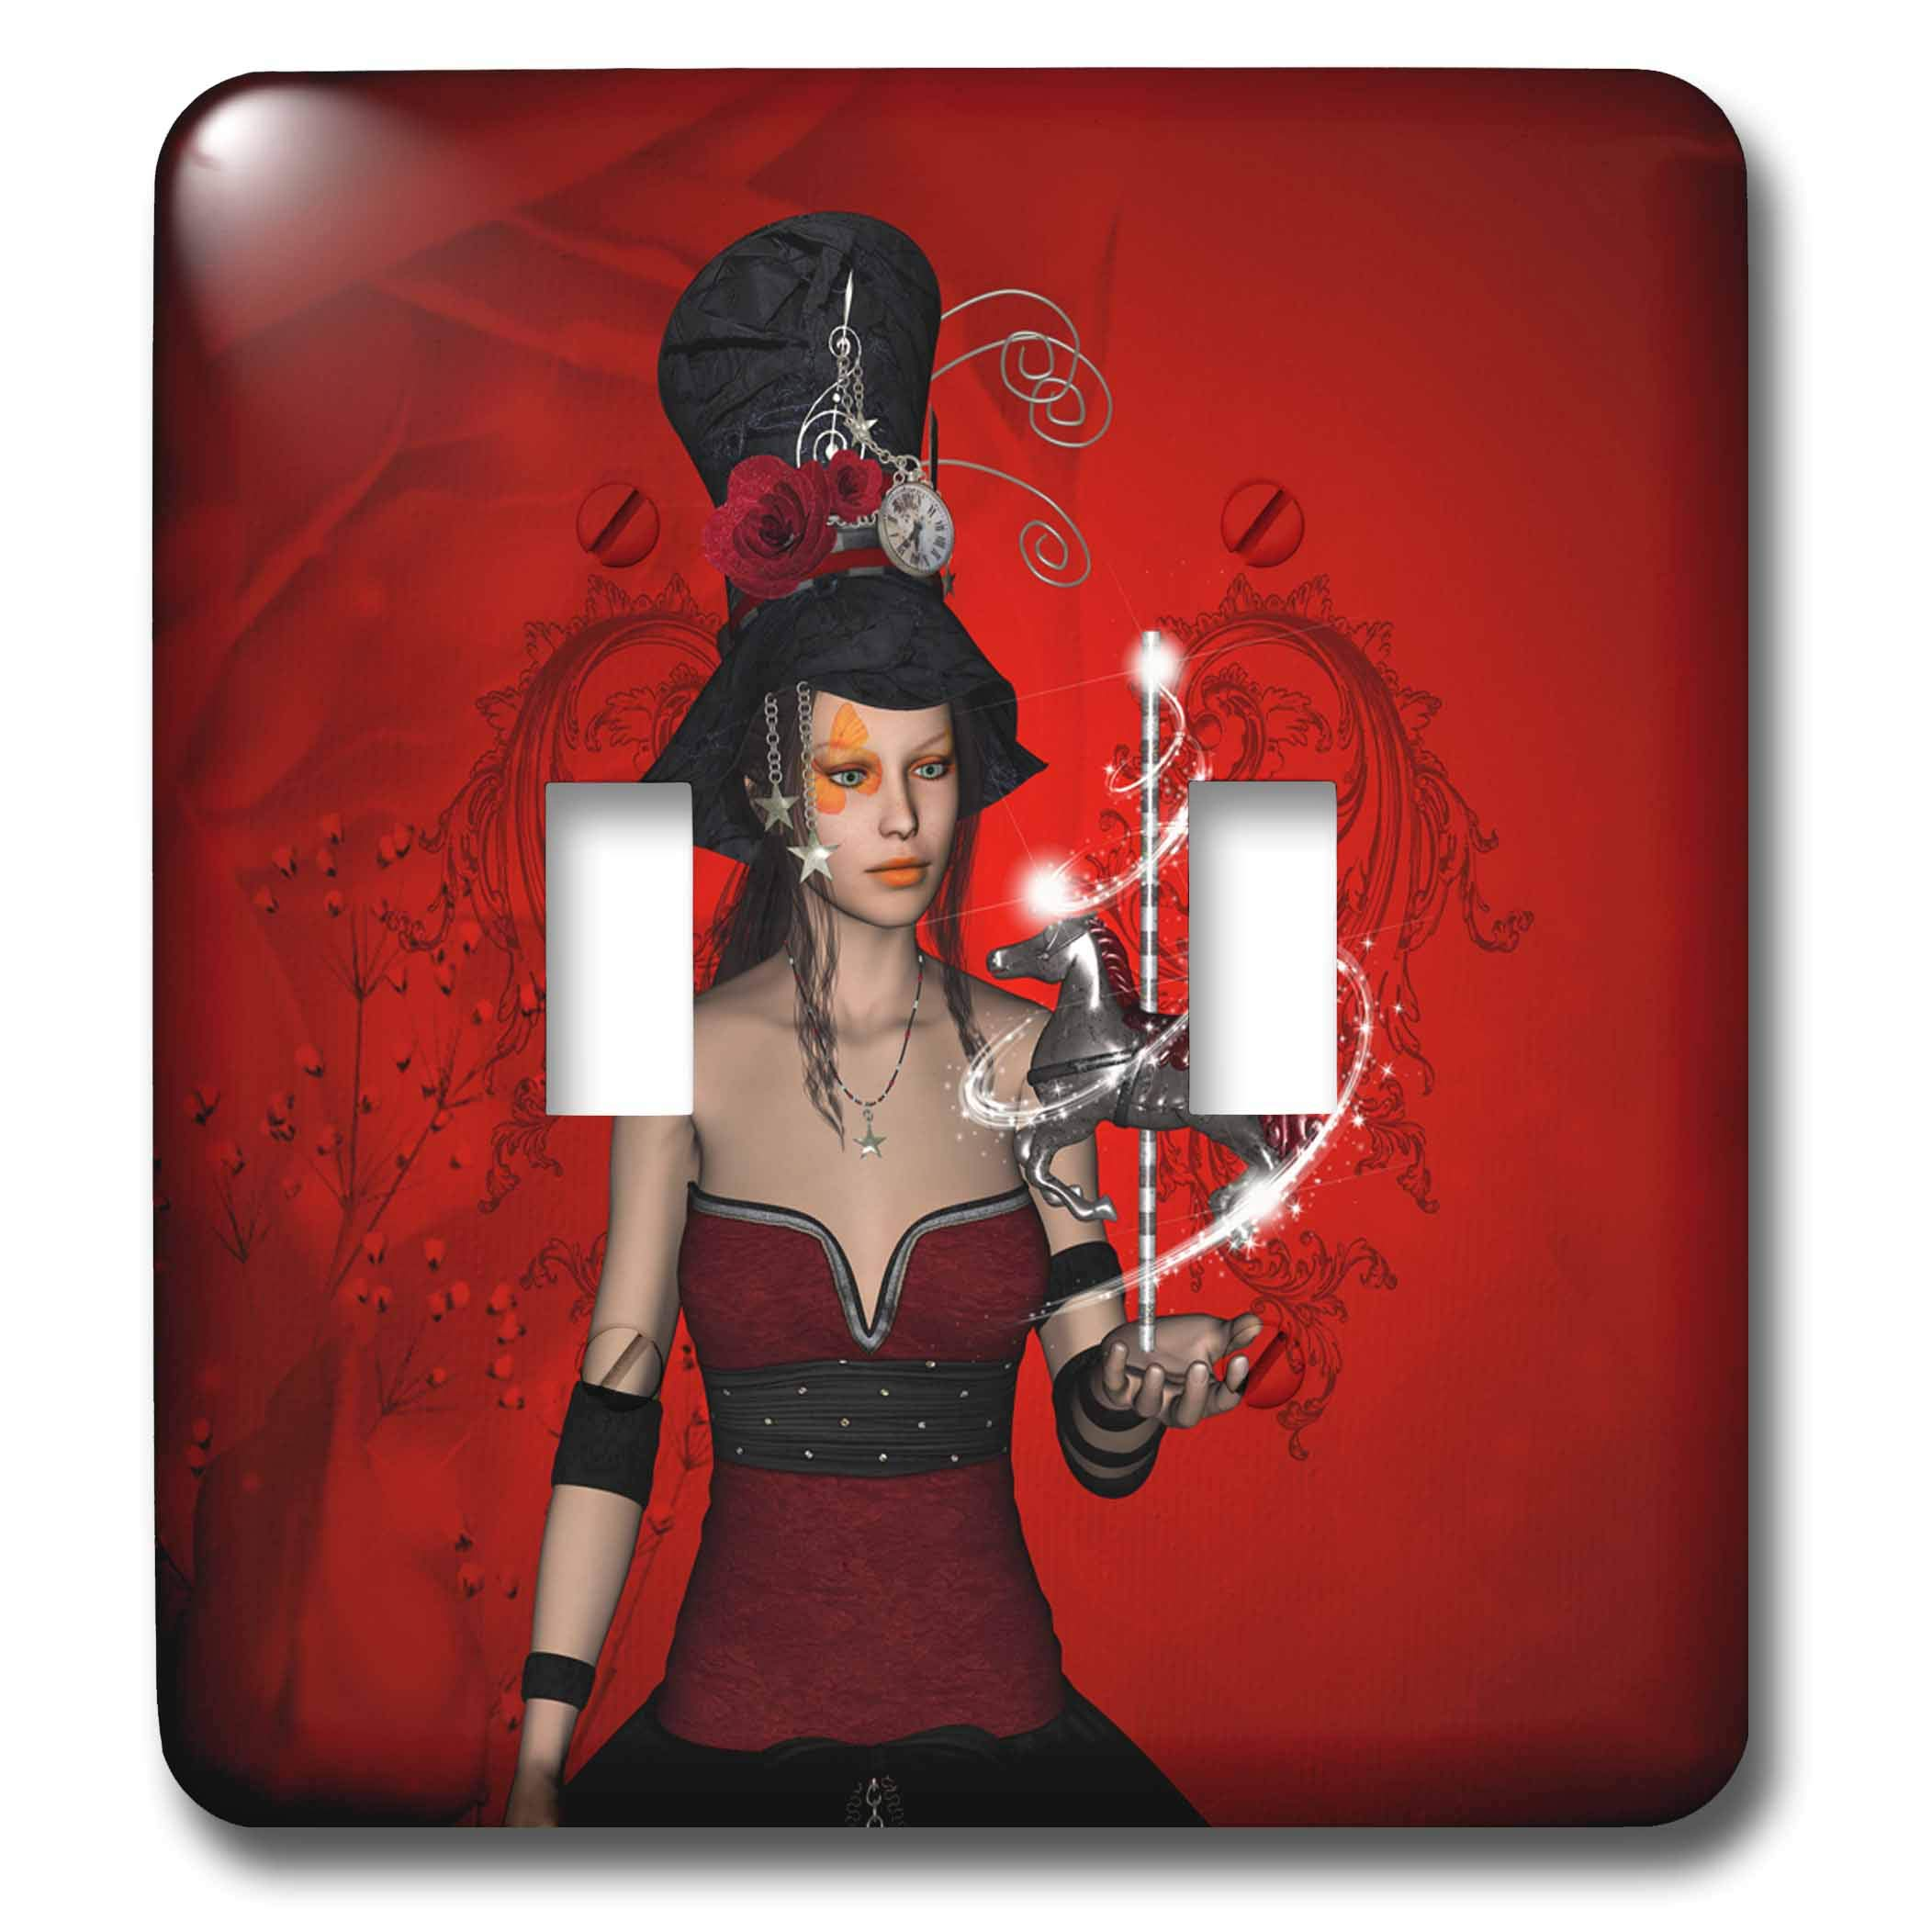 3dRose Heike Köhnen Desing Fantasy - Fantasy women with horse - Light Switch Covers - double toggle switch (lsp_289151_2)